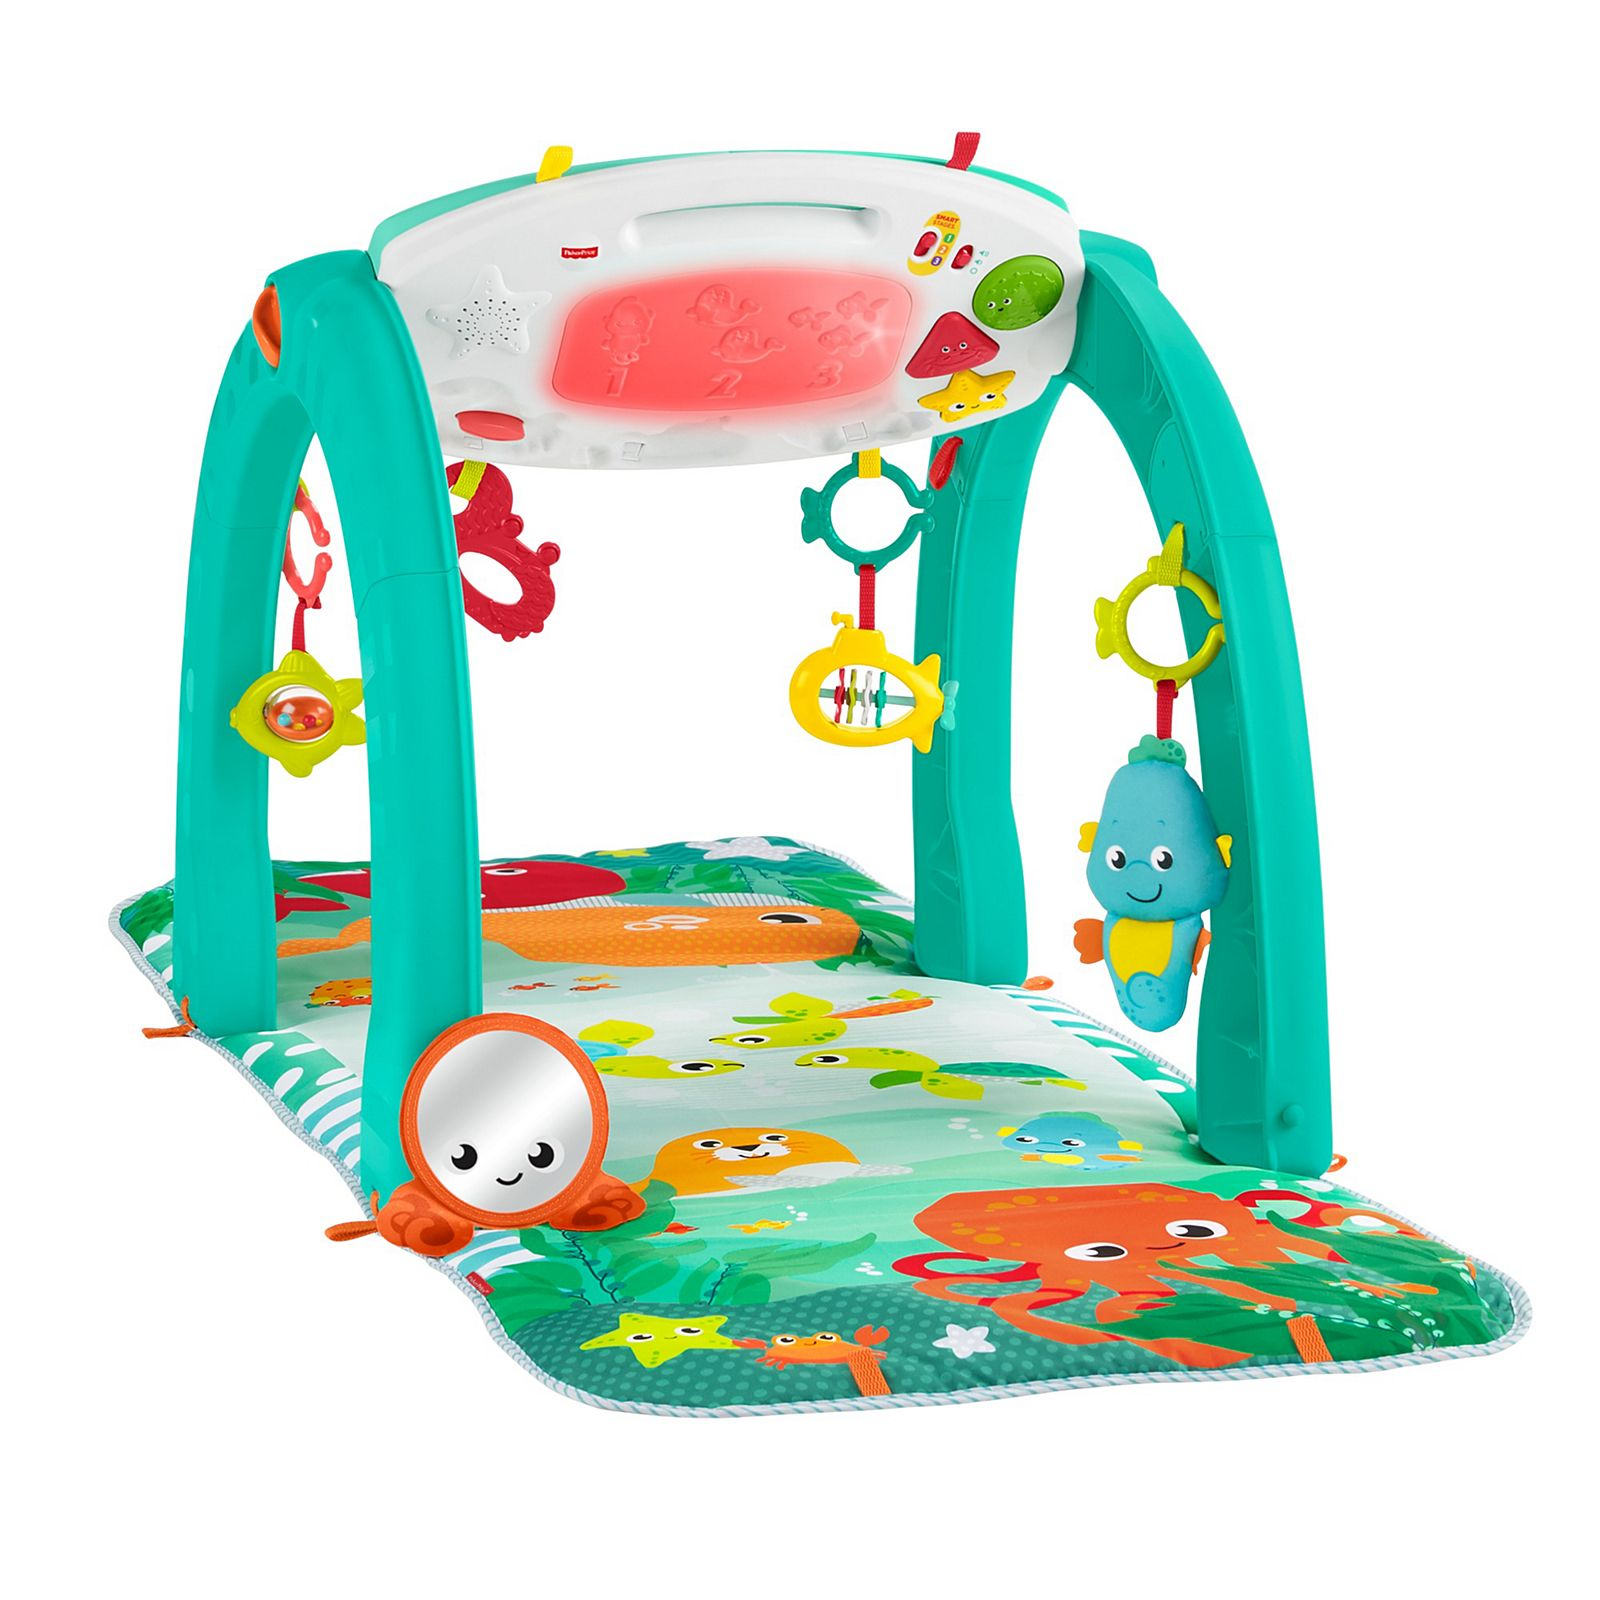 4-in-1Baby Gym Floor Play Mat Musical Activity Fisher Price Kick Play Piano Toy